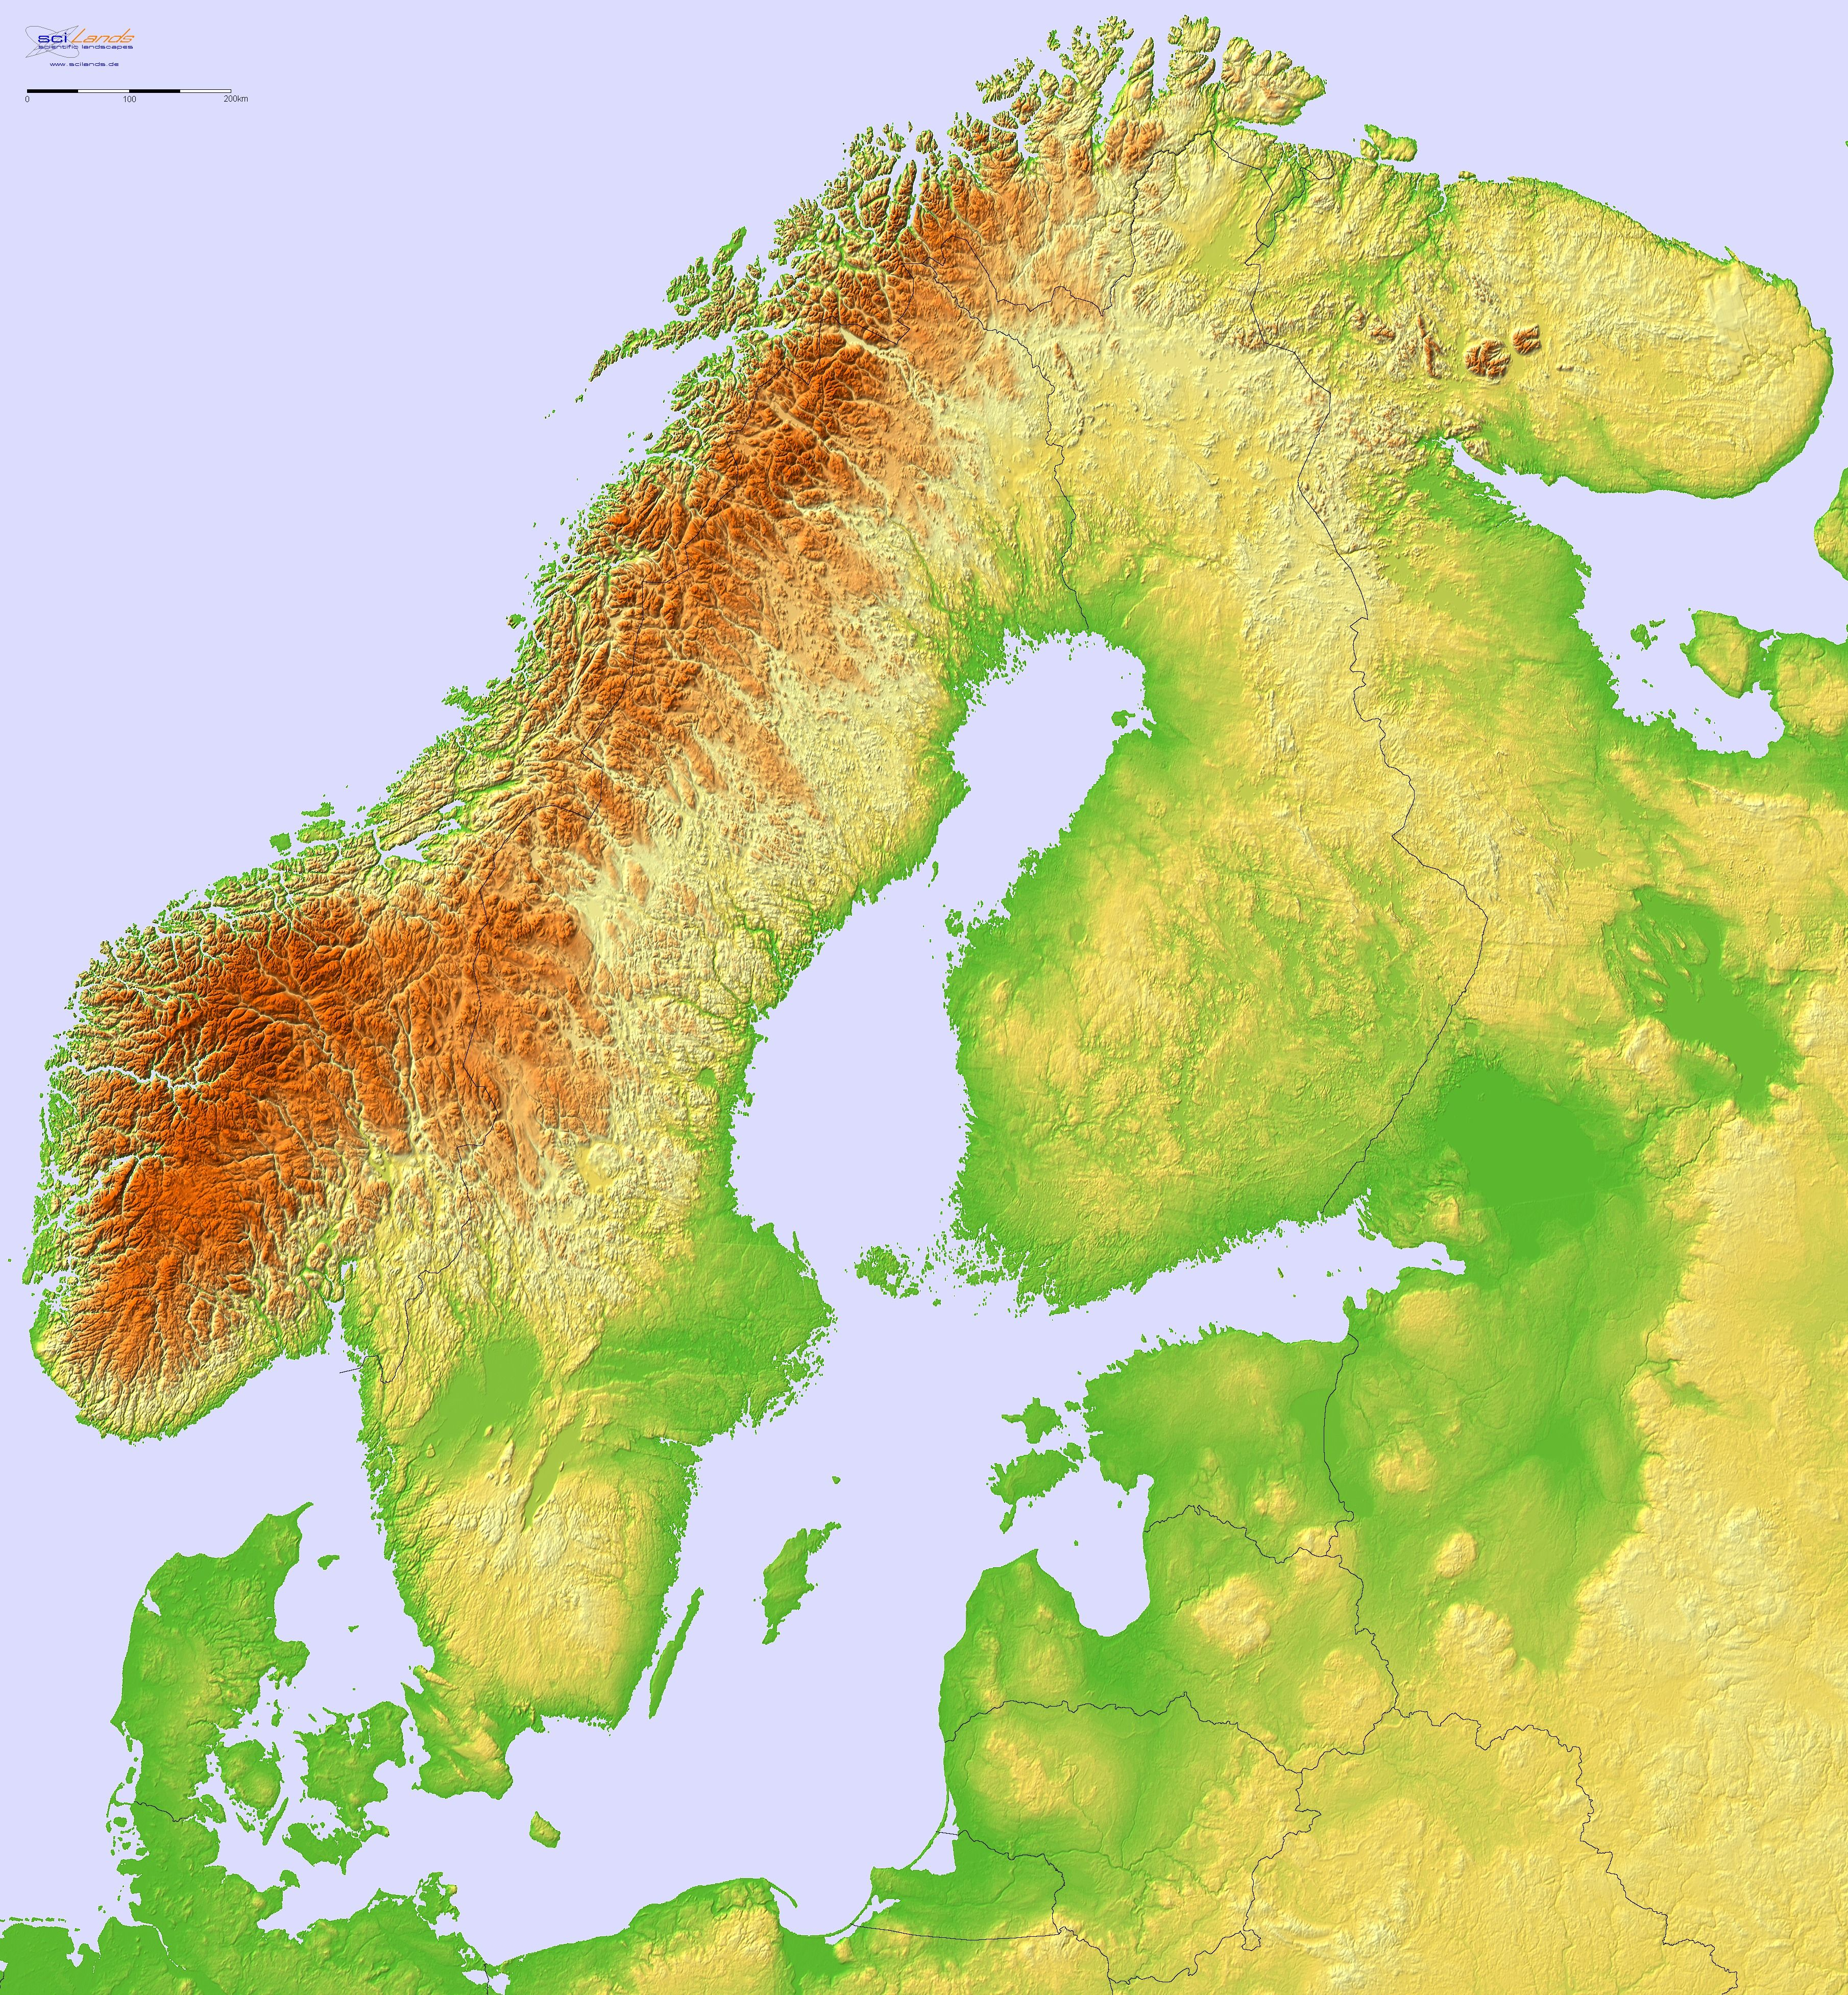 Norway Sweden Finland Estonia Lithuania Latvia Relief Map Cartography Historical Maps